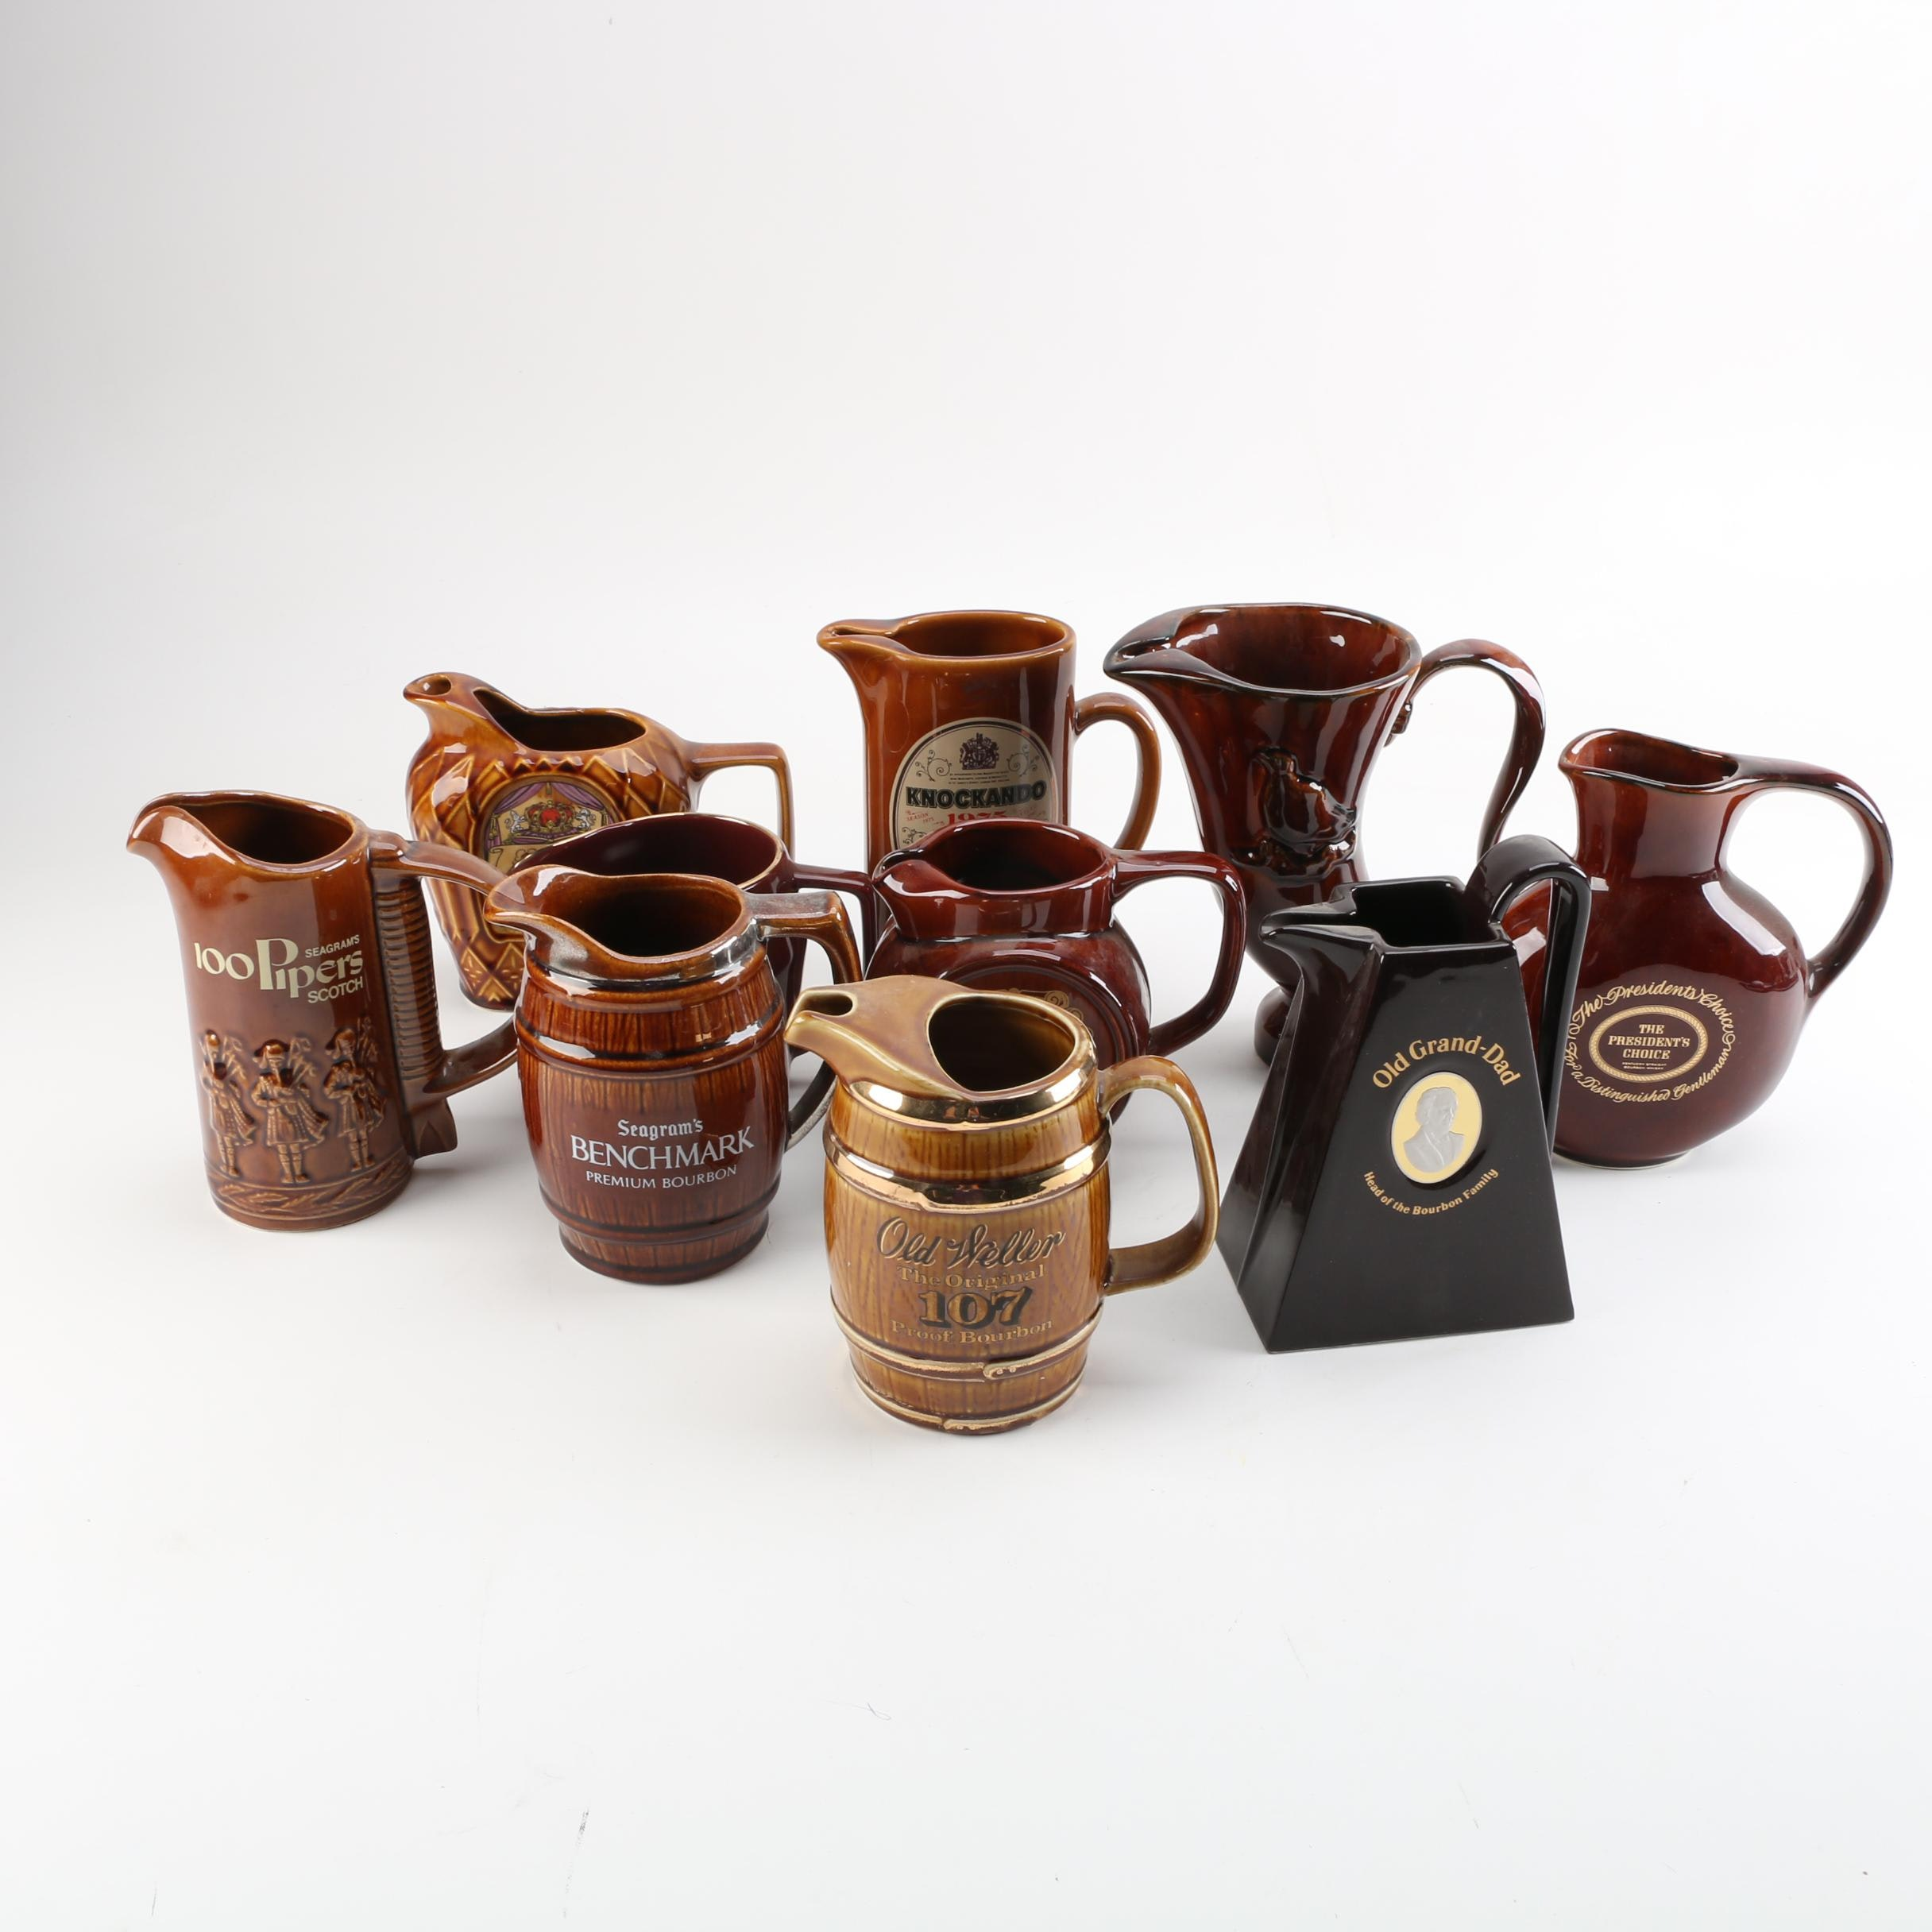 Whiskey Pitchers, Including Old Grand-Dad, Knockando, Old Weller and More